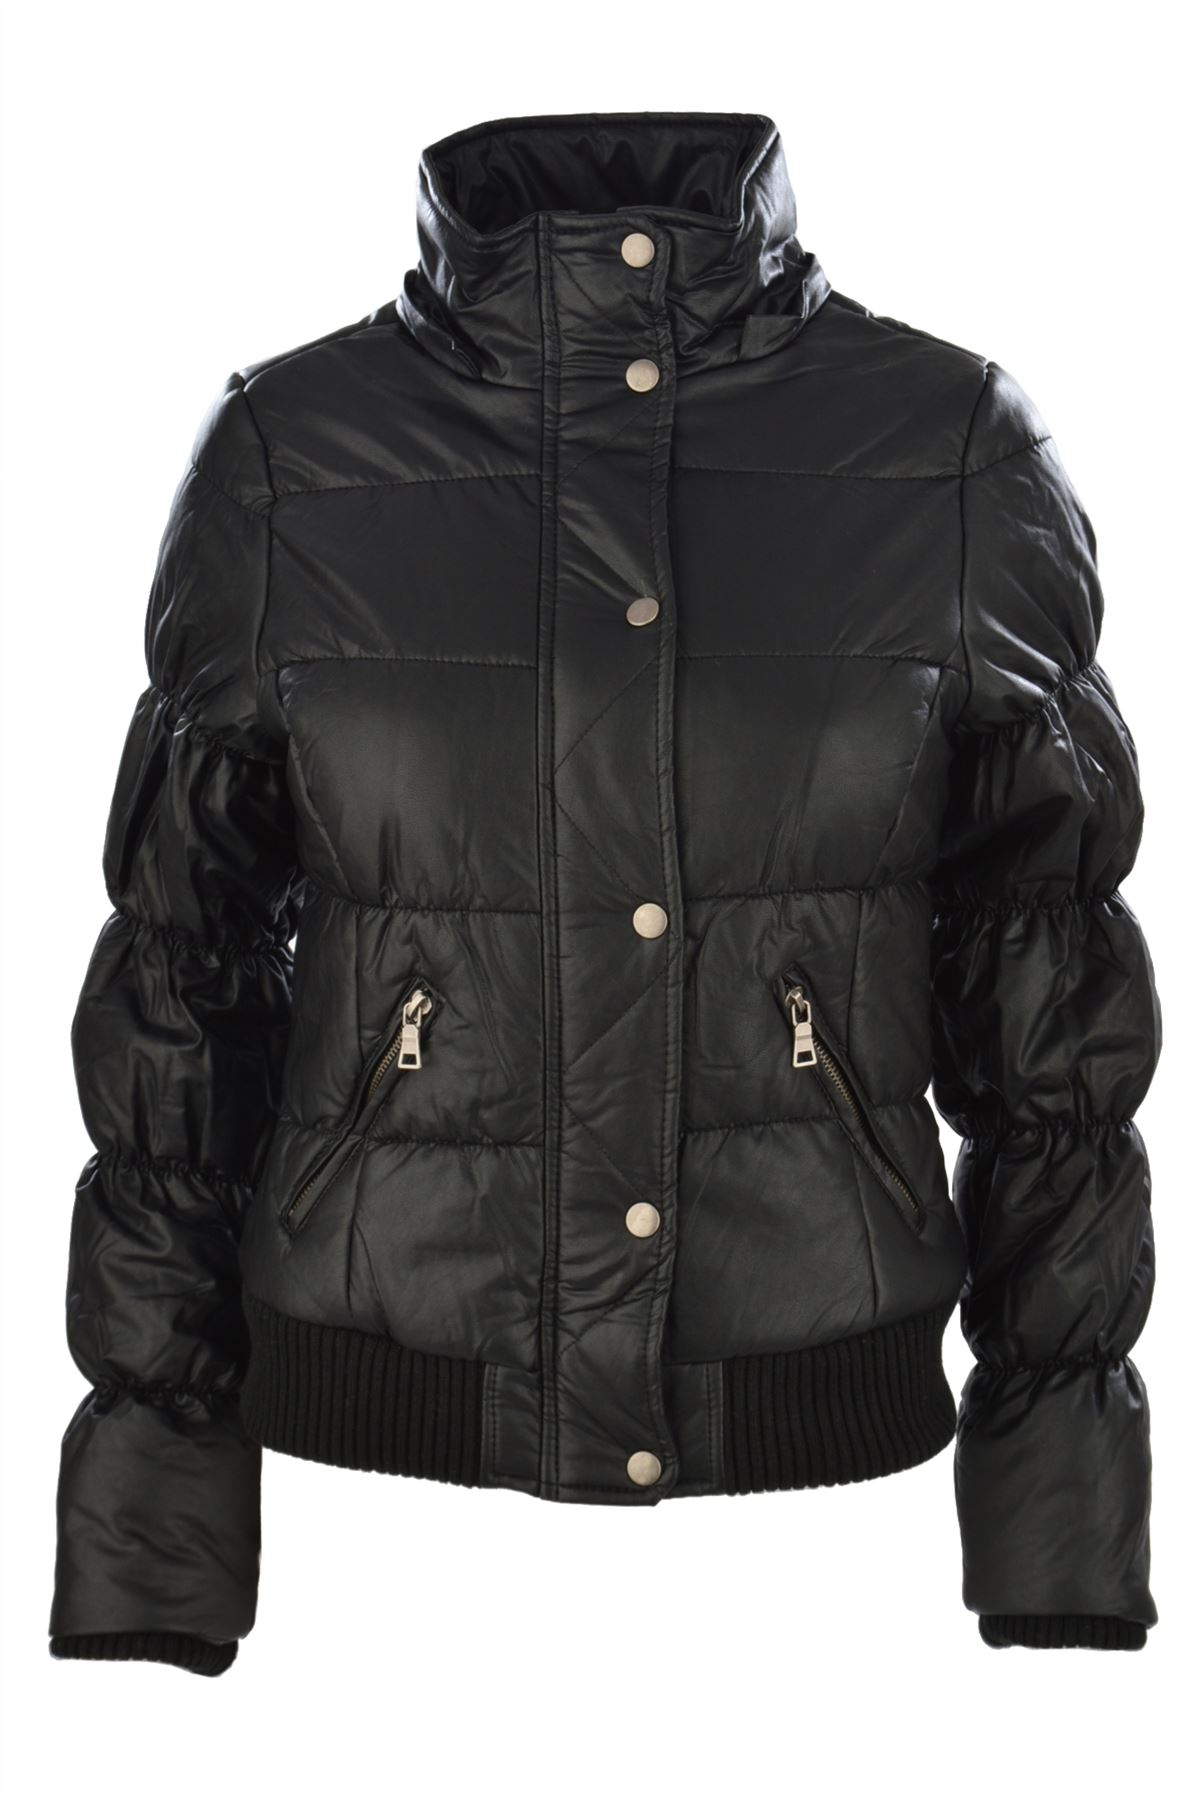 Womens Leather Bomber Jacket With Fur Hood Iucn Water